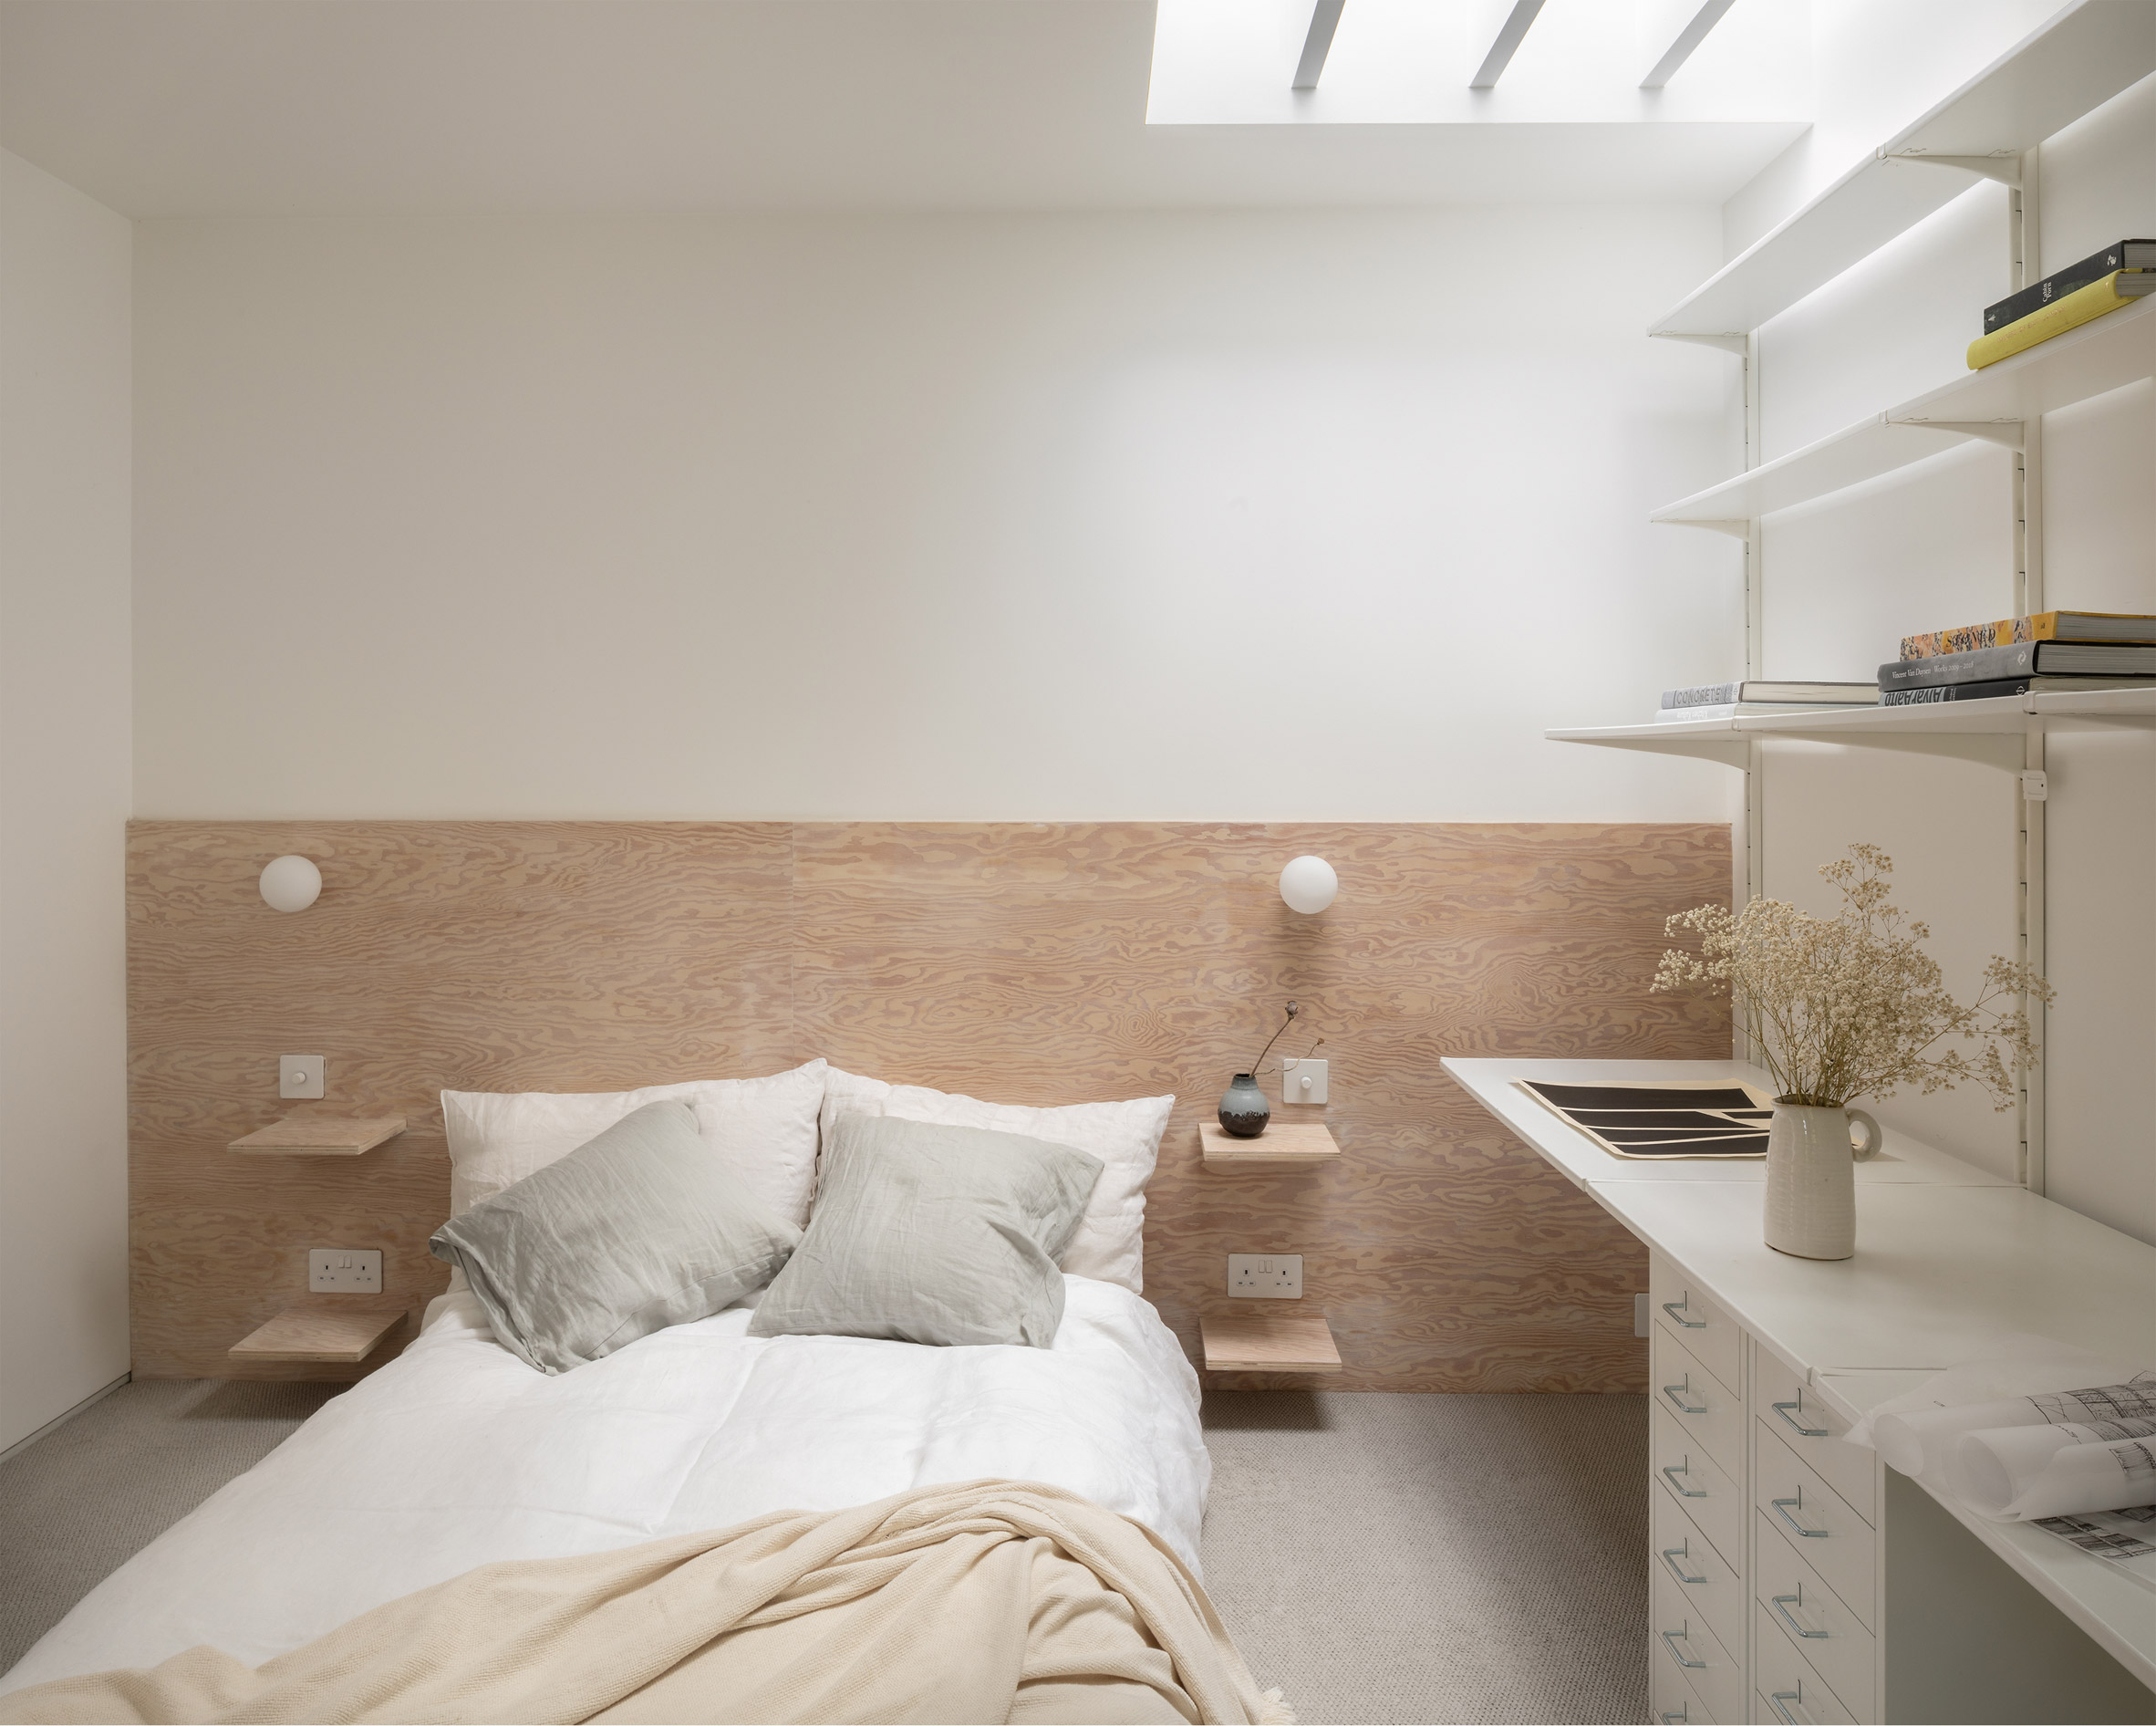 Bedroom of ER Residence by Studio Hallett Ike includes a study